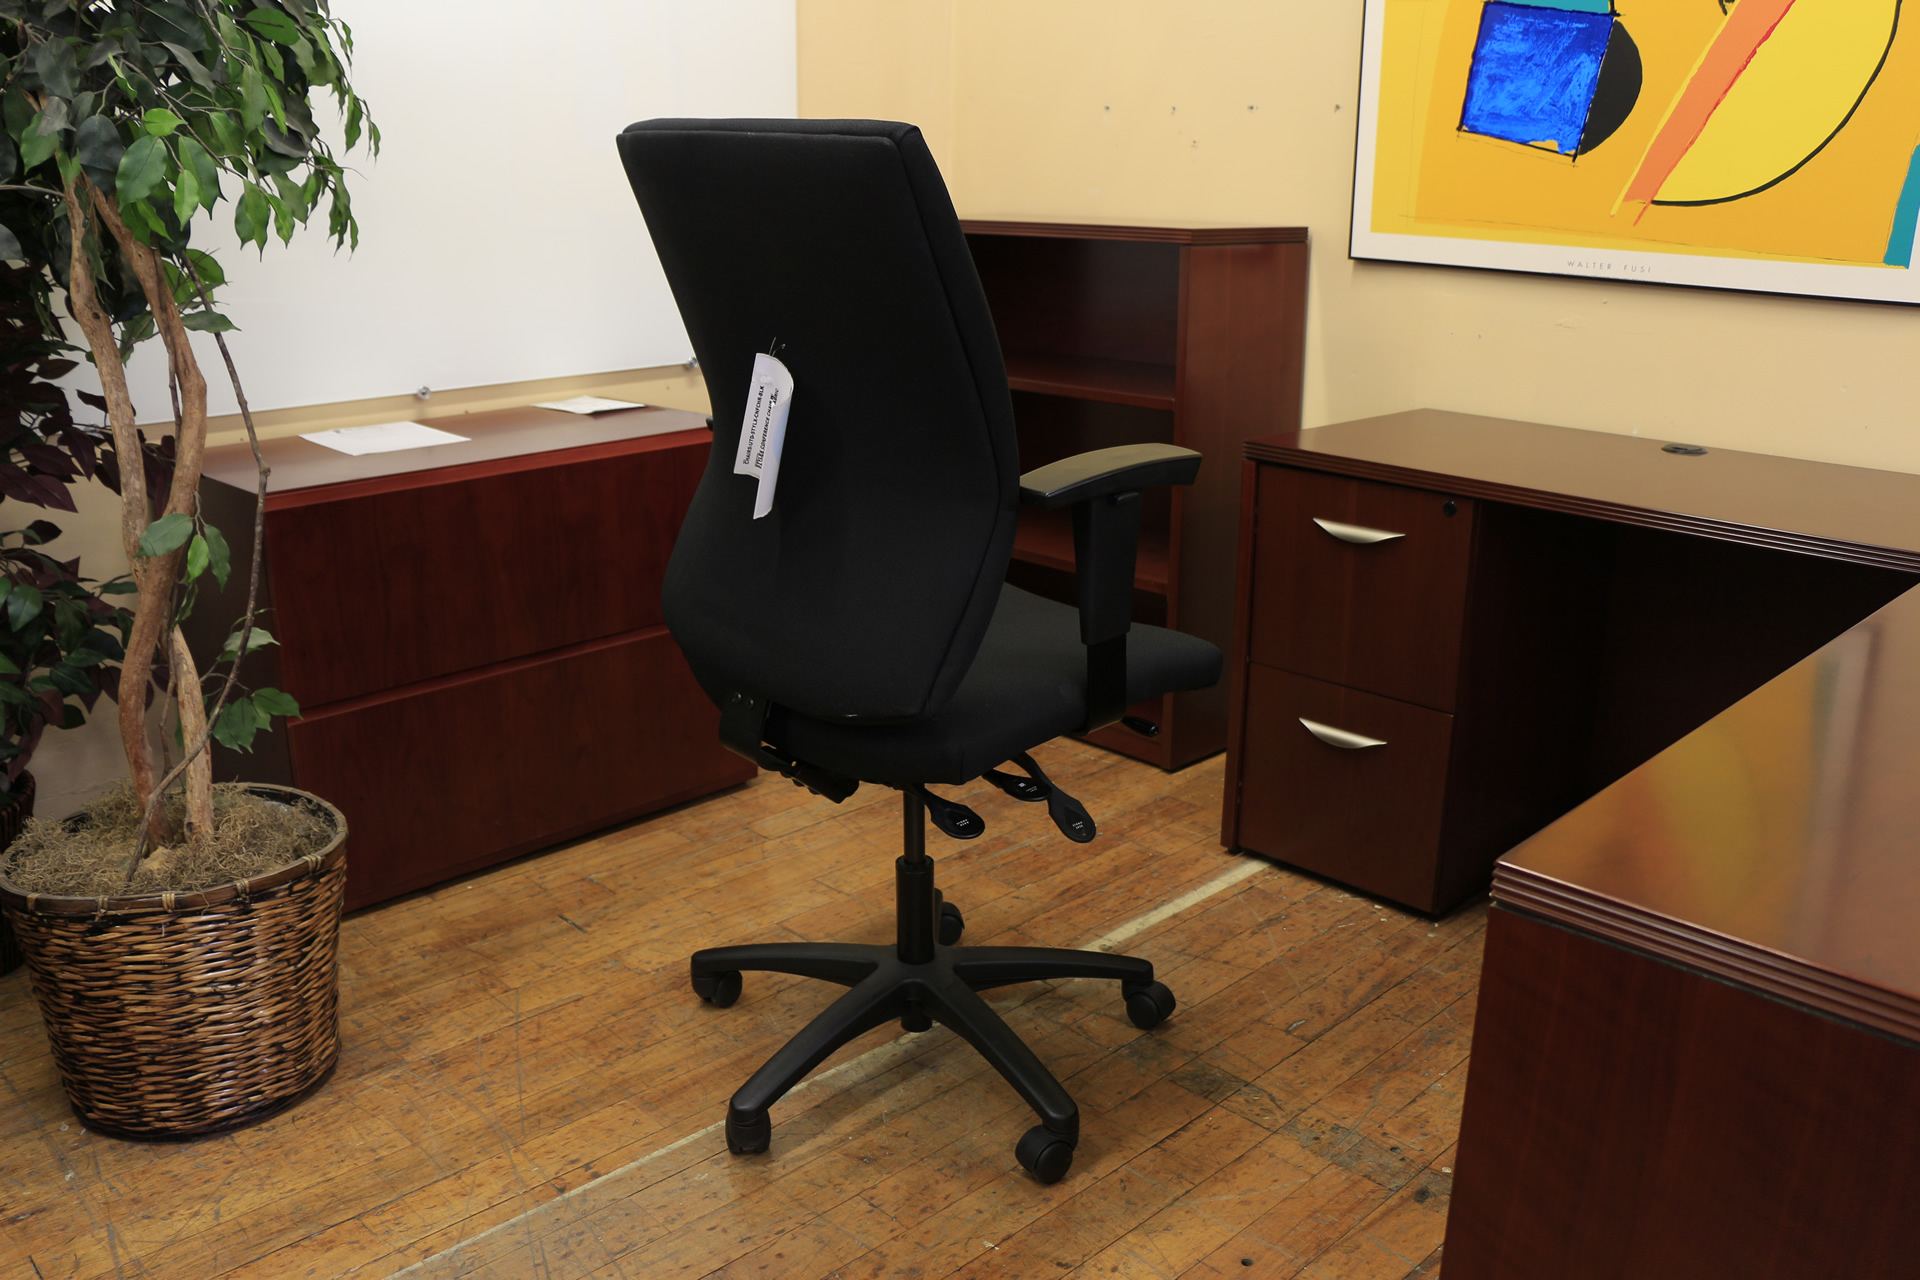 peartreeofficefurniture_peartreeofficefurniture_peartreeofficefurniture_2015-06-02_20-04-43.jpg